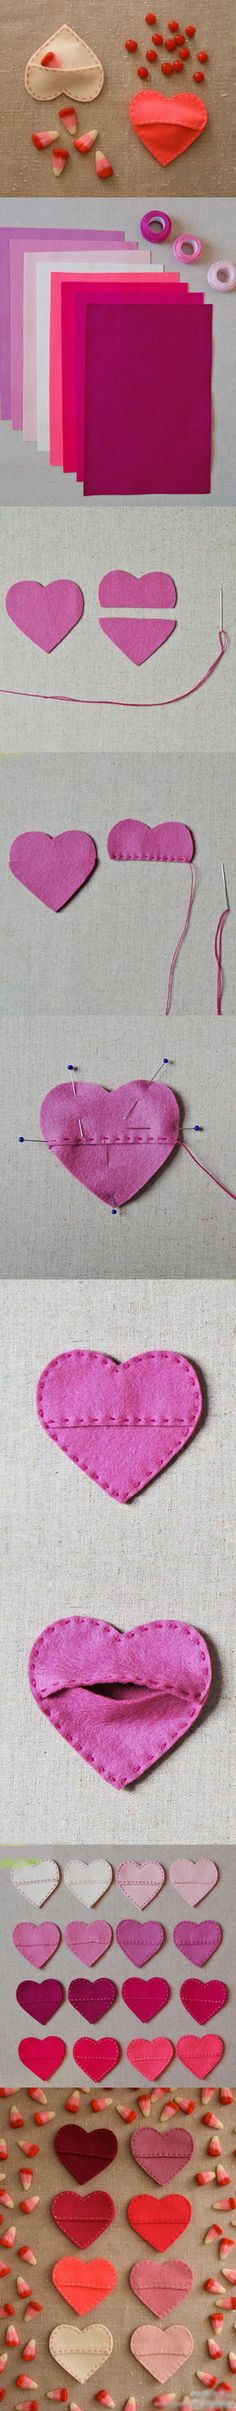 Beautiful Heart-shaped Craft | Click to see More DIY & Crafts Tutorials on Our Site.